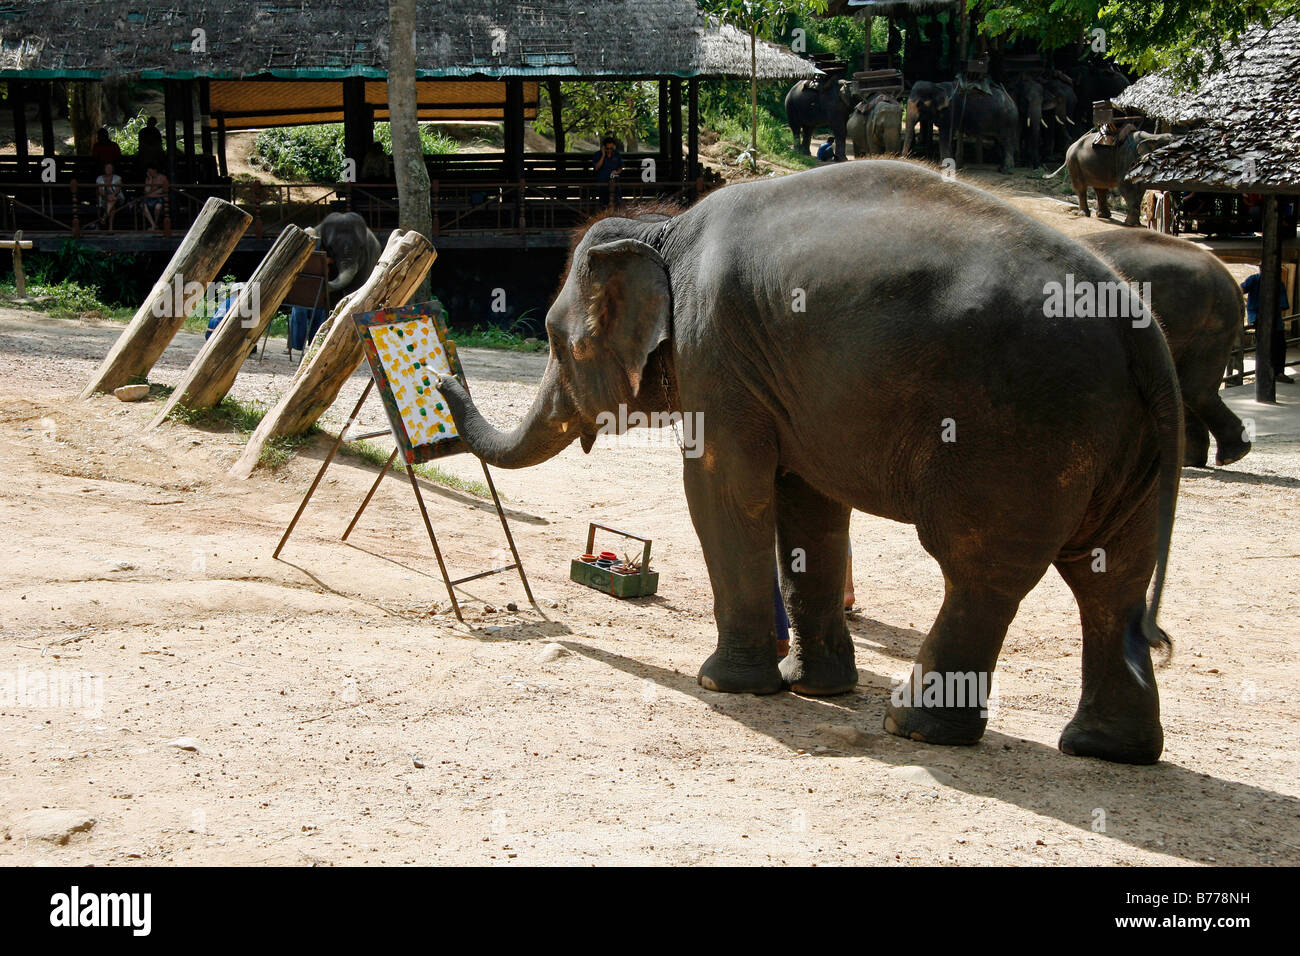 Elephant painting, elephant farm, Mae Sa Valley, jungle, near Chiang Mai, Thailand, Asia Stock Photo